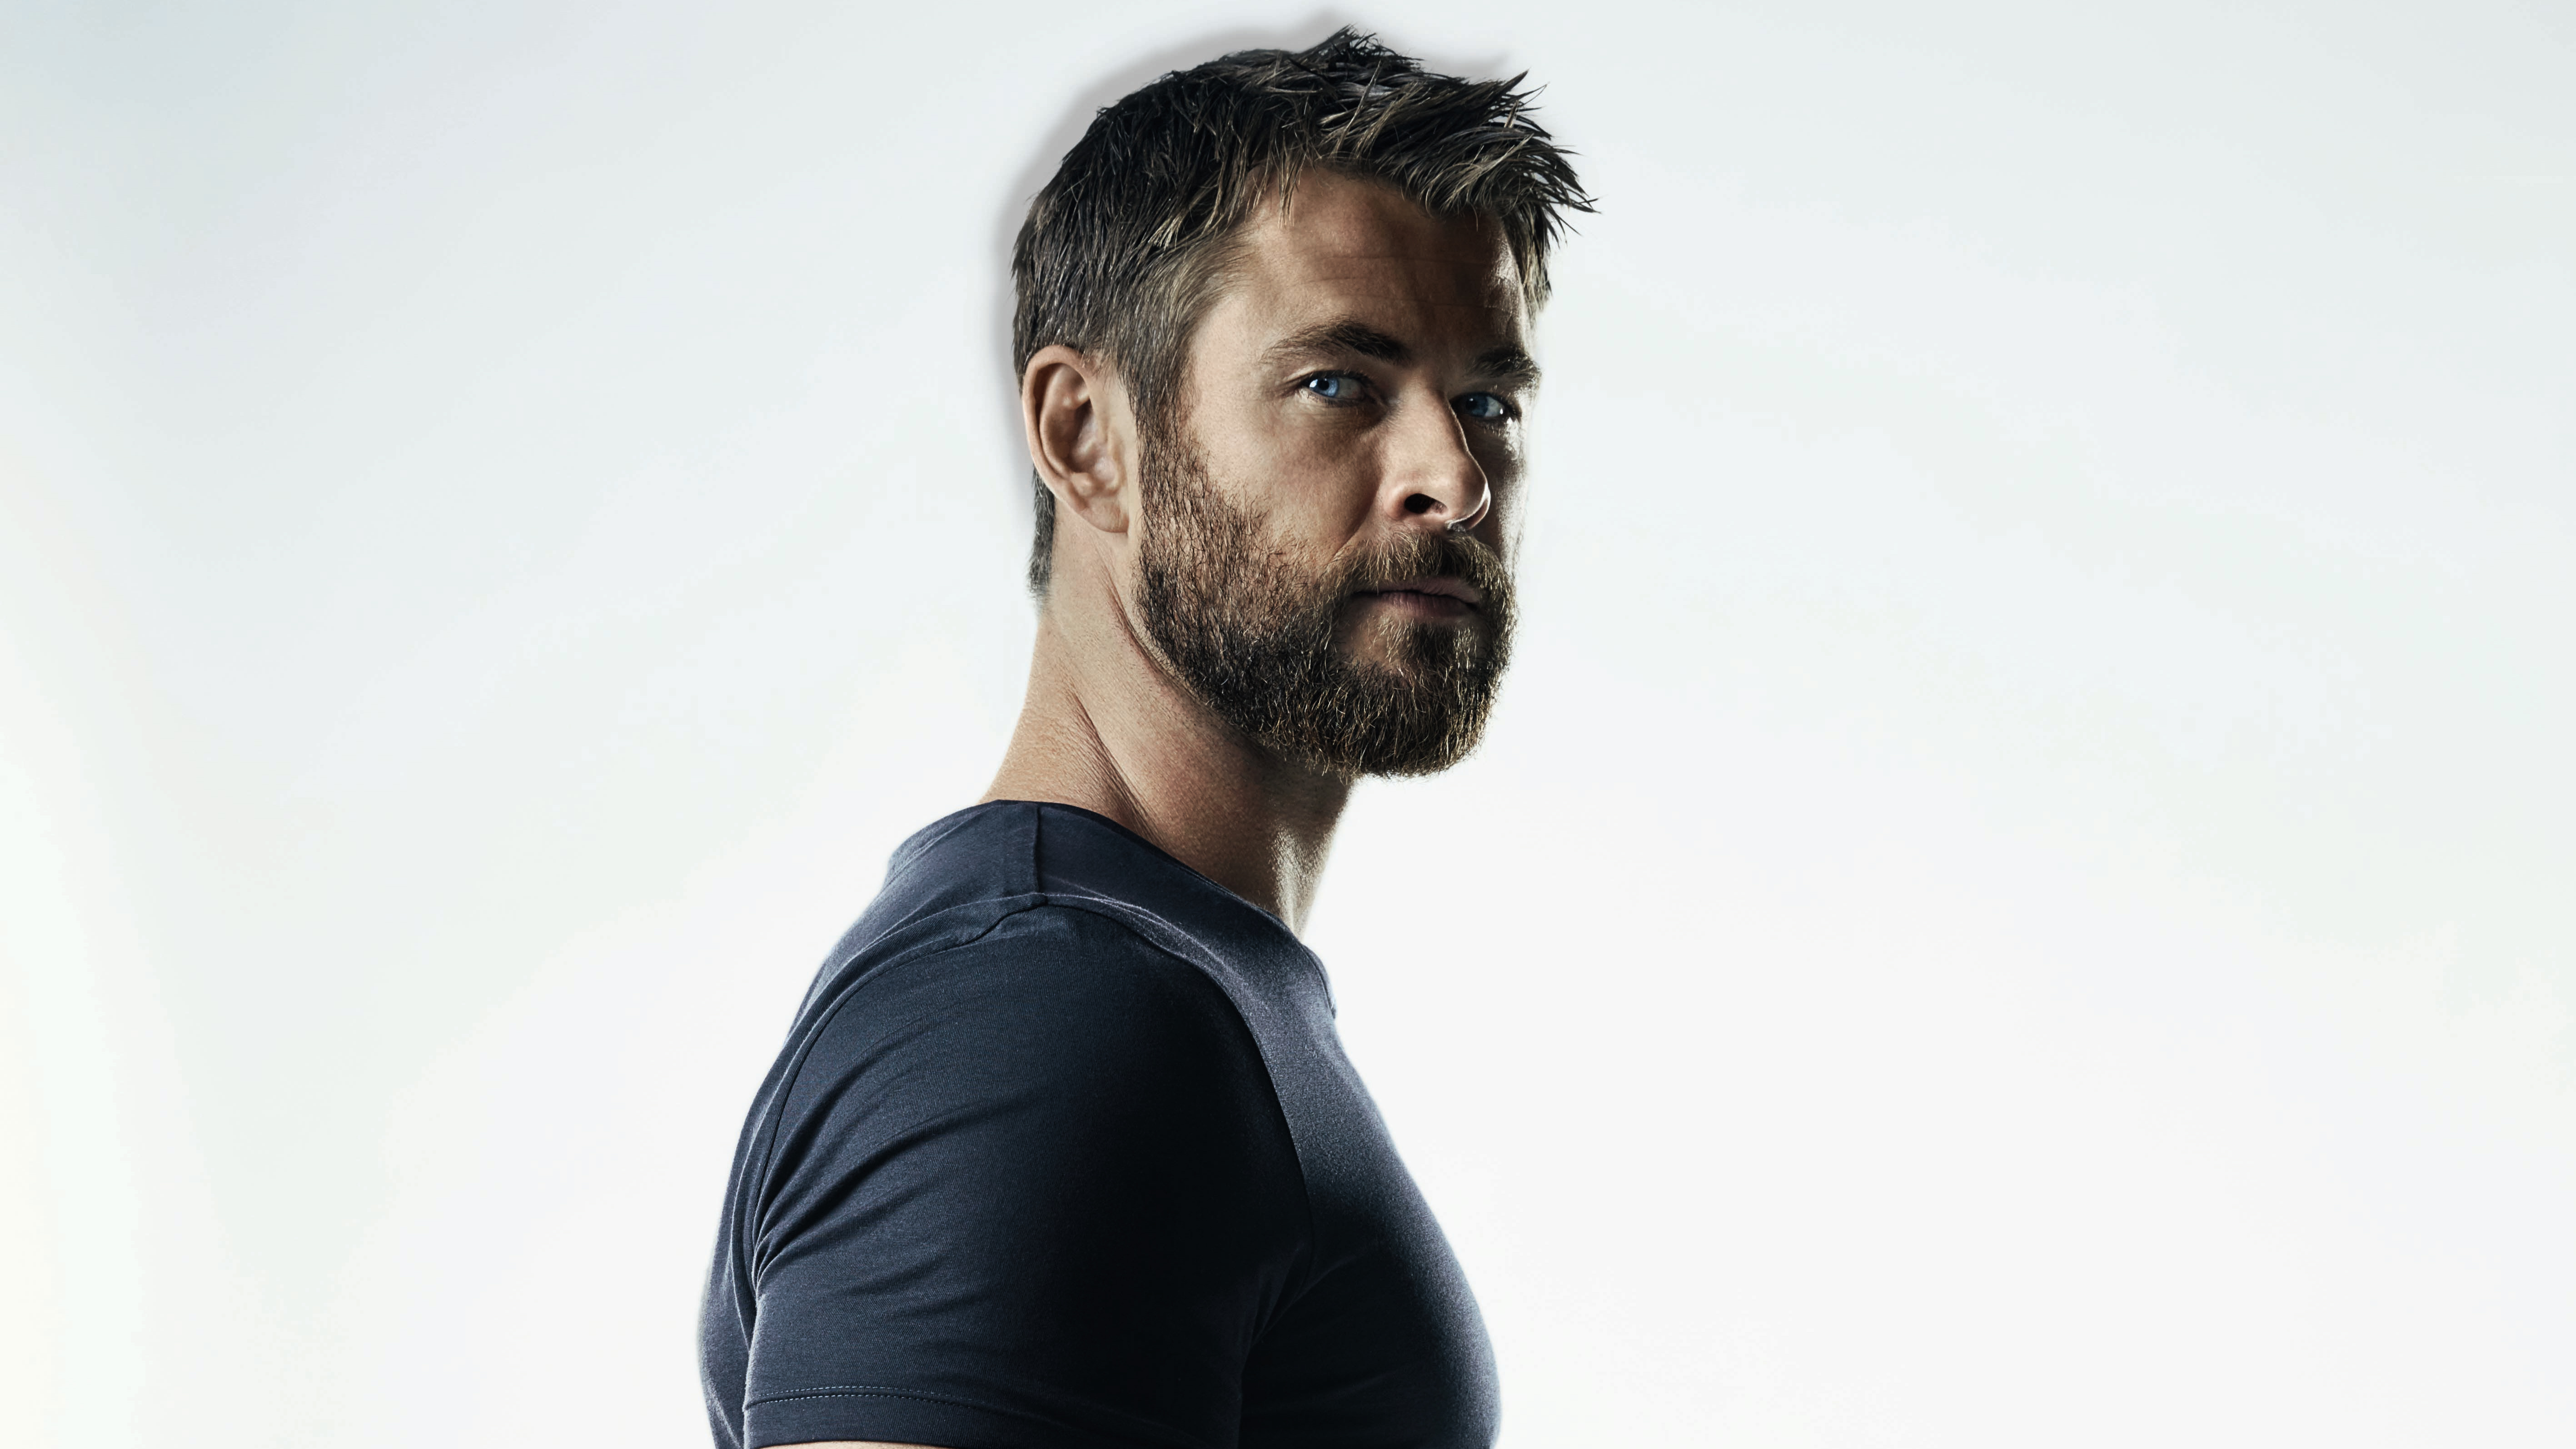 Chris hemsworth 5k hd celebrities 4k wallpapers images backgrounds photos and pictures - Chris hemsworth hd images ...